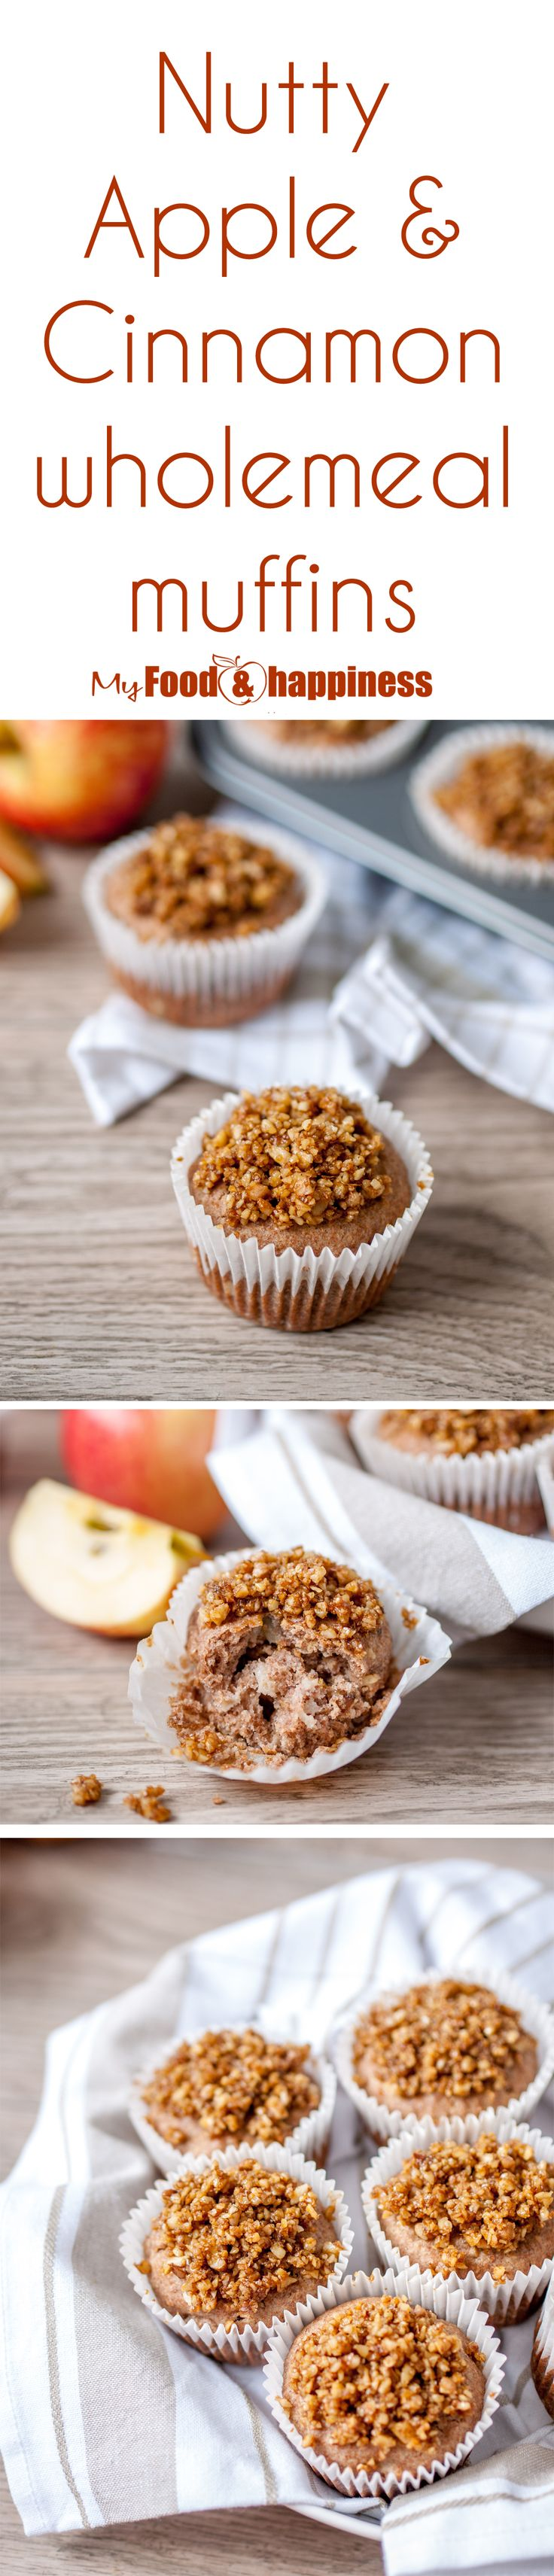 Nutty Apple & Cinnamon wholemeal muffins that have no added sugar and yet they are still sweet and super delicious. Muffins full of naturally sweet ingredients! This is a great way to give your family a treat instead of store-bought muffins that are loaded with sugar, icing and other unhealthy ingredients.